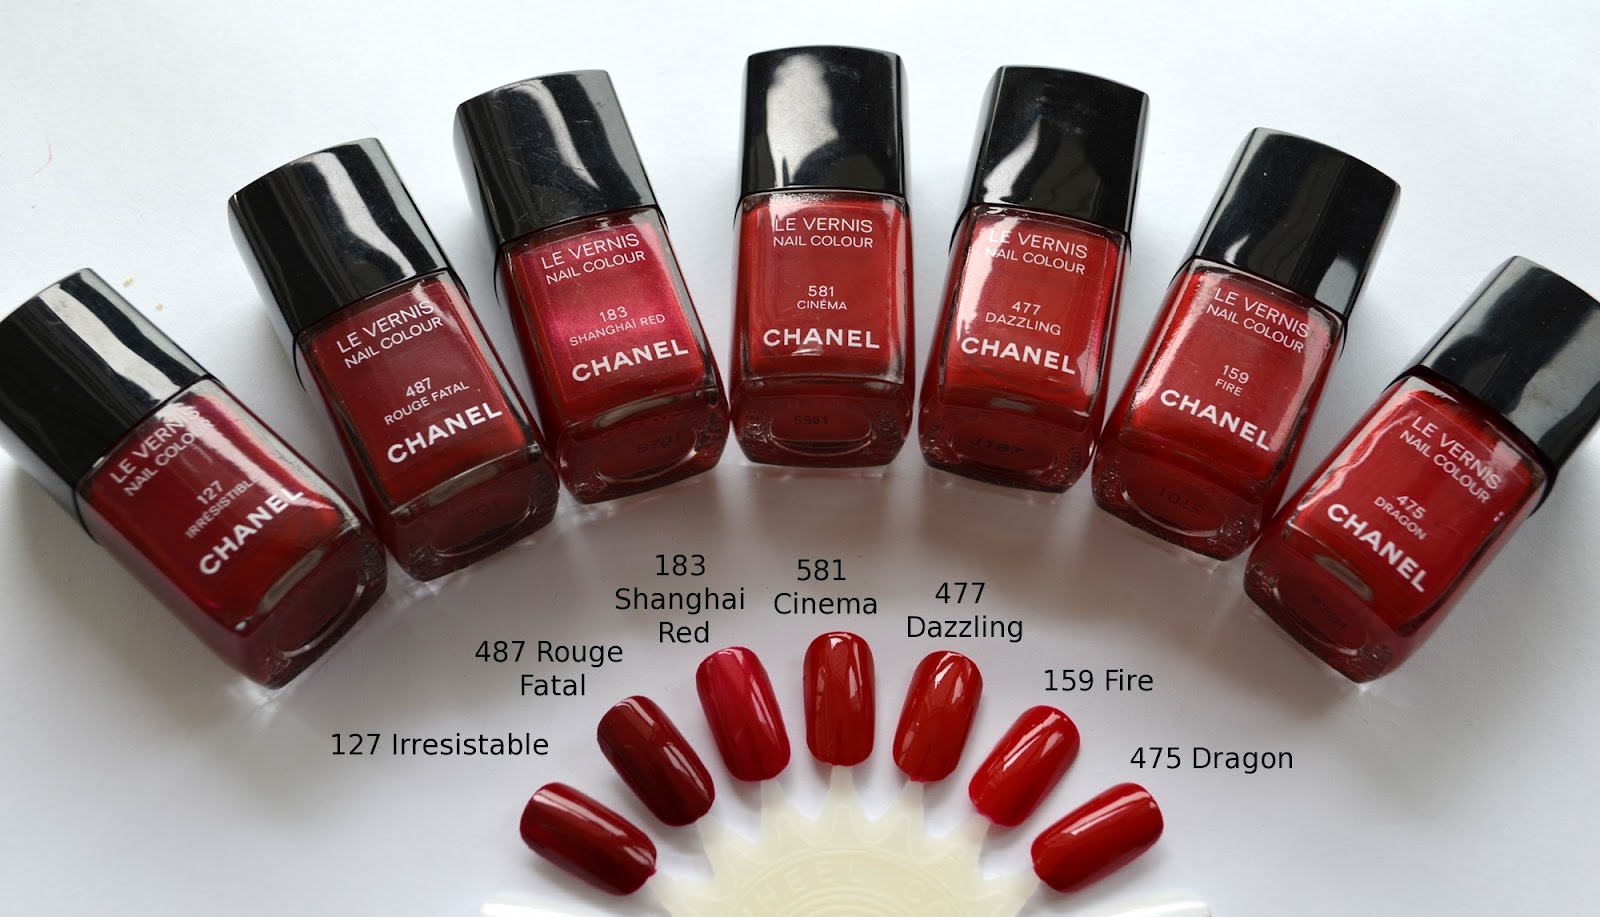 Chanel 581 Cinema & Fifty Shades of Red | Color Me Loud